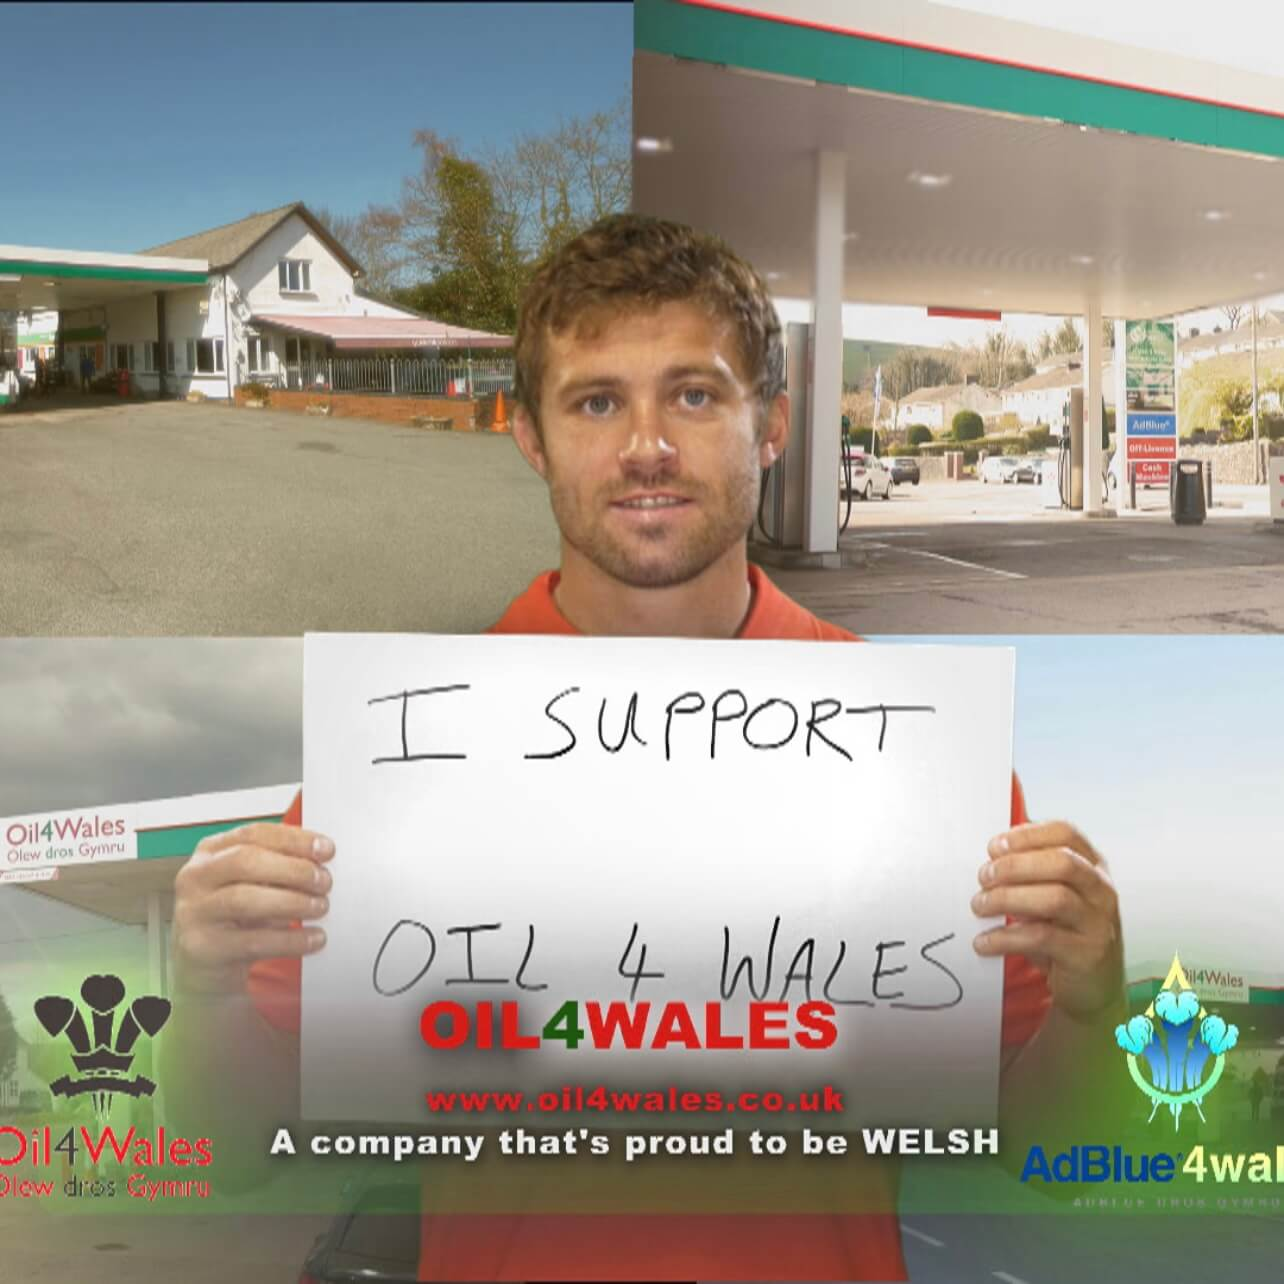 https://www.oil4wales.co.uk/wp-content/uploads/2021/08/leighhalfpenny.jpg